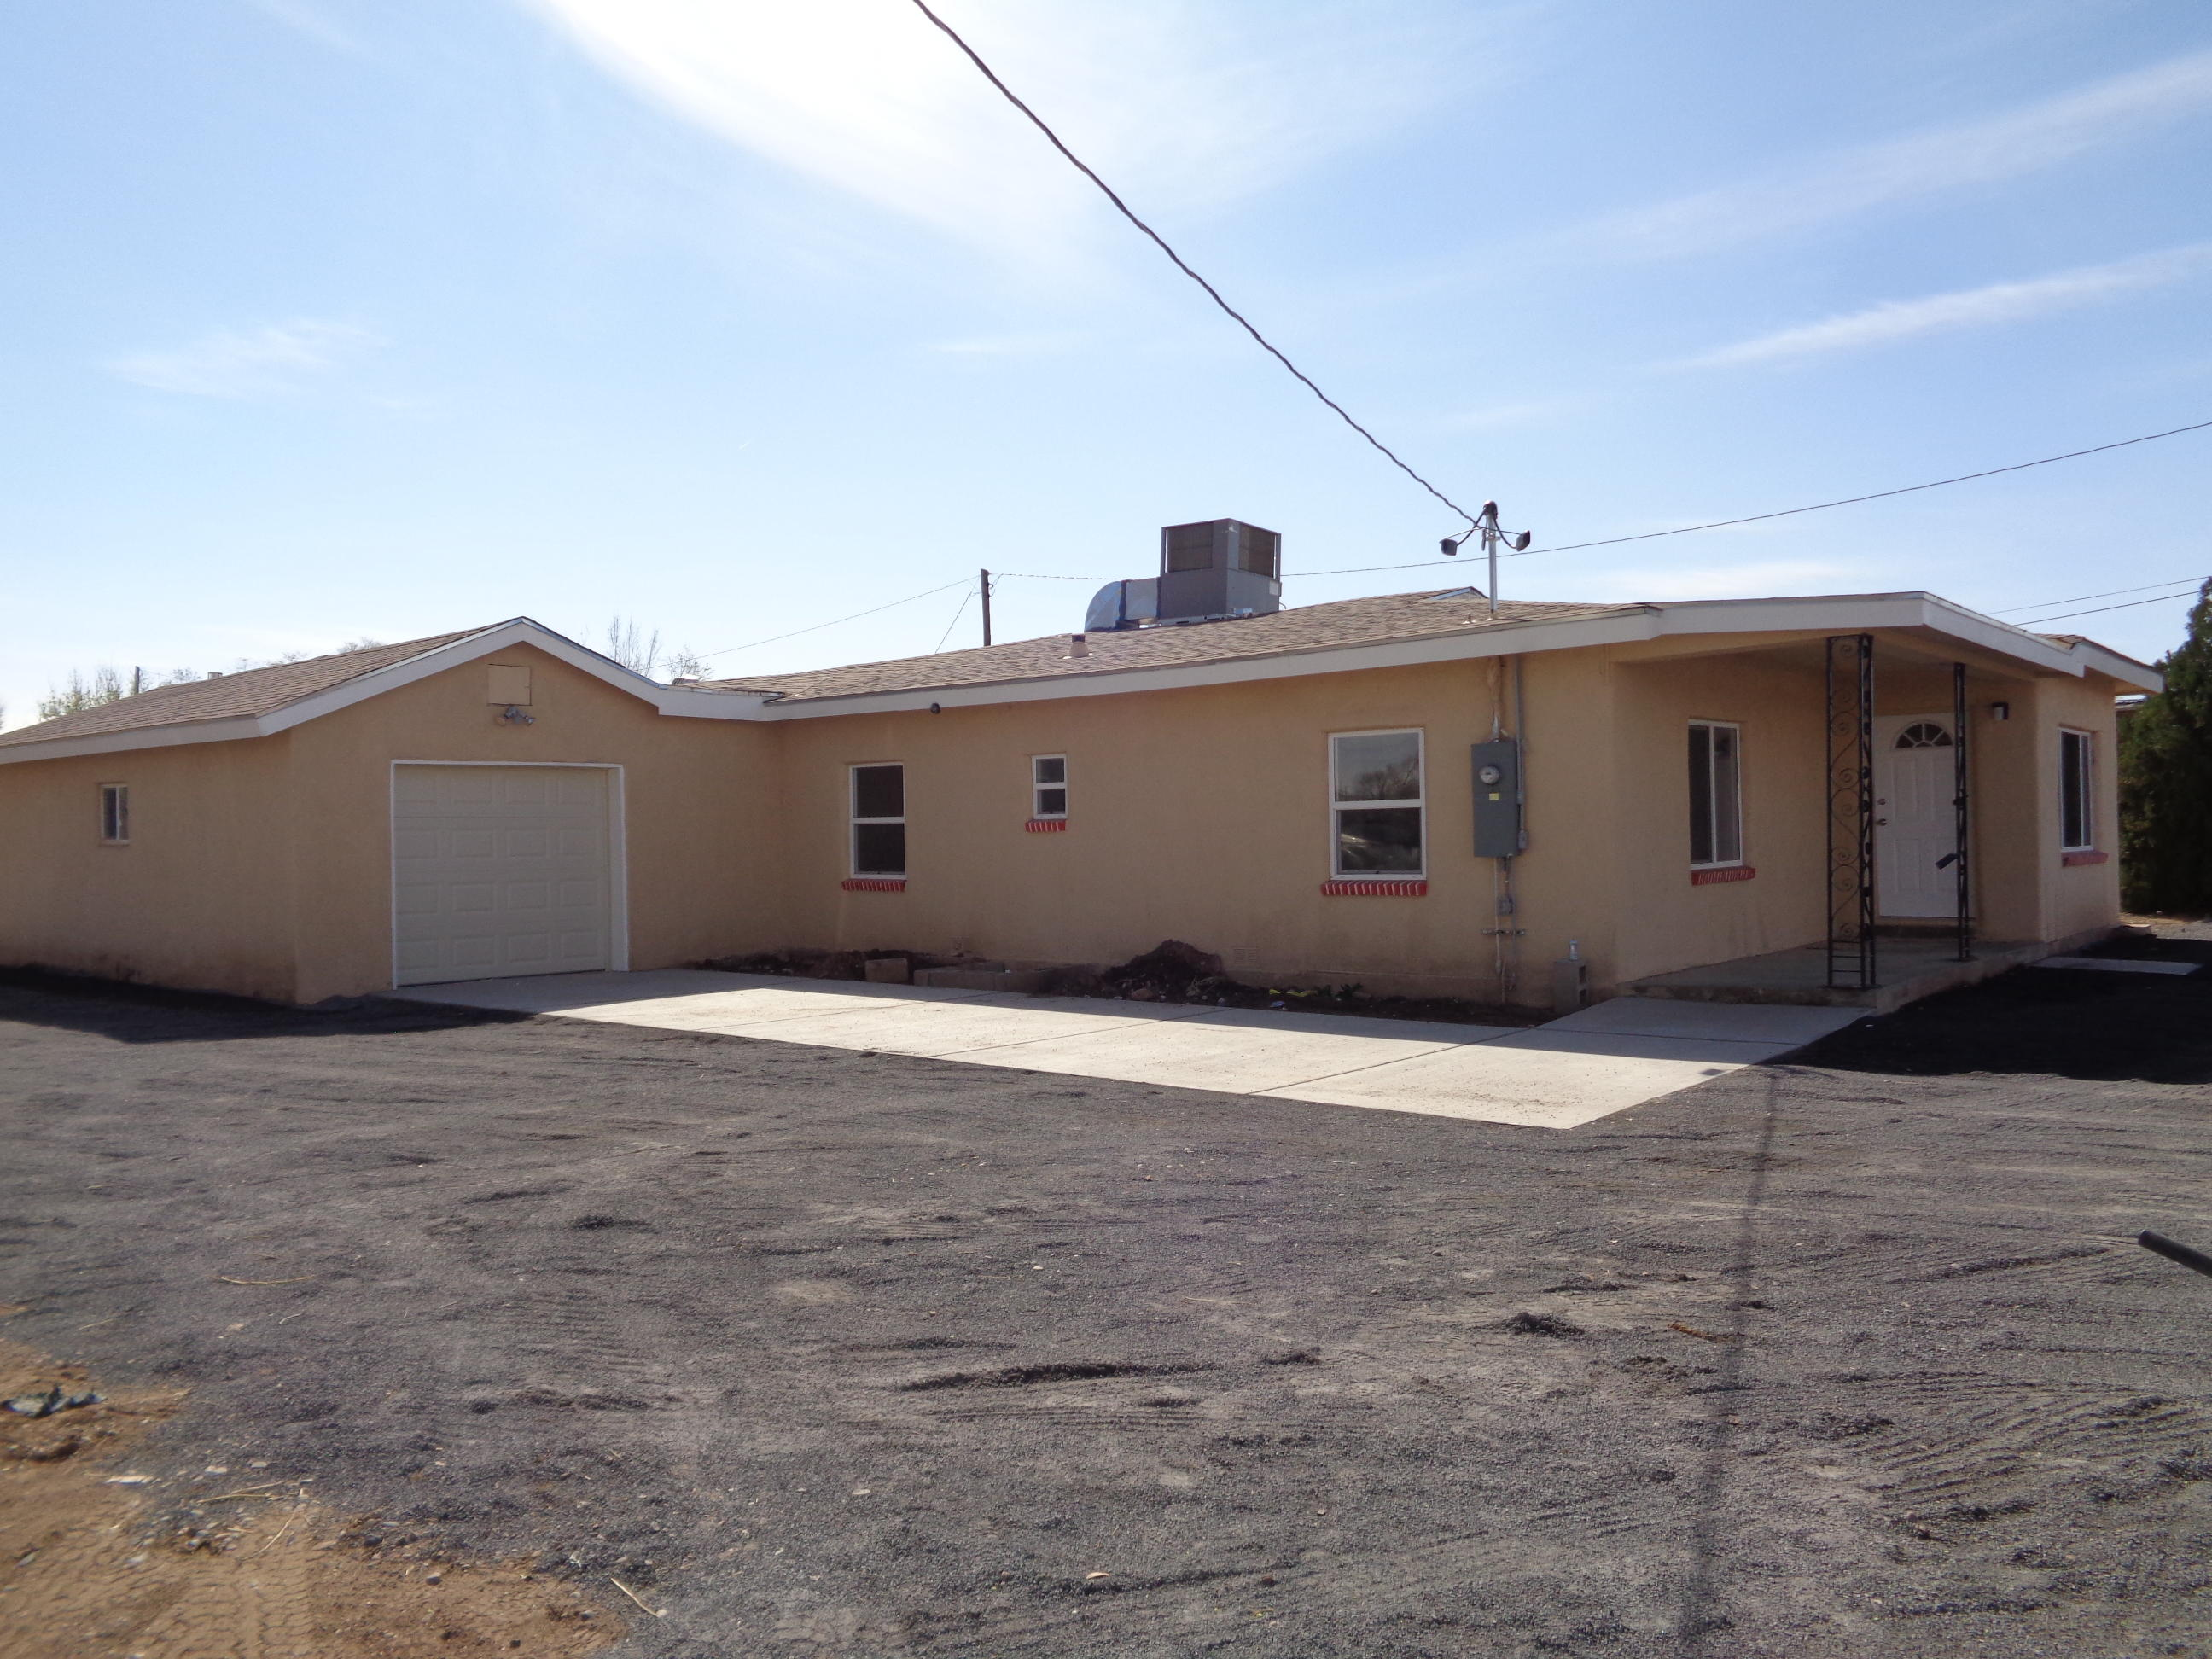 This Fantabulous Adobe House has been remodeled and ready for a quick closing!  It has 3 bedrooms plus an office.  Formal dining room between living room and kitchen.  All appliances convey.  Split master suite with roll-in shower.  12 x 26 garage.  Situated on 3.18 acres adjacent to the Tome Acequia--easy access to irrigate!